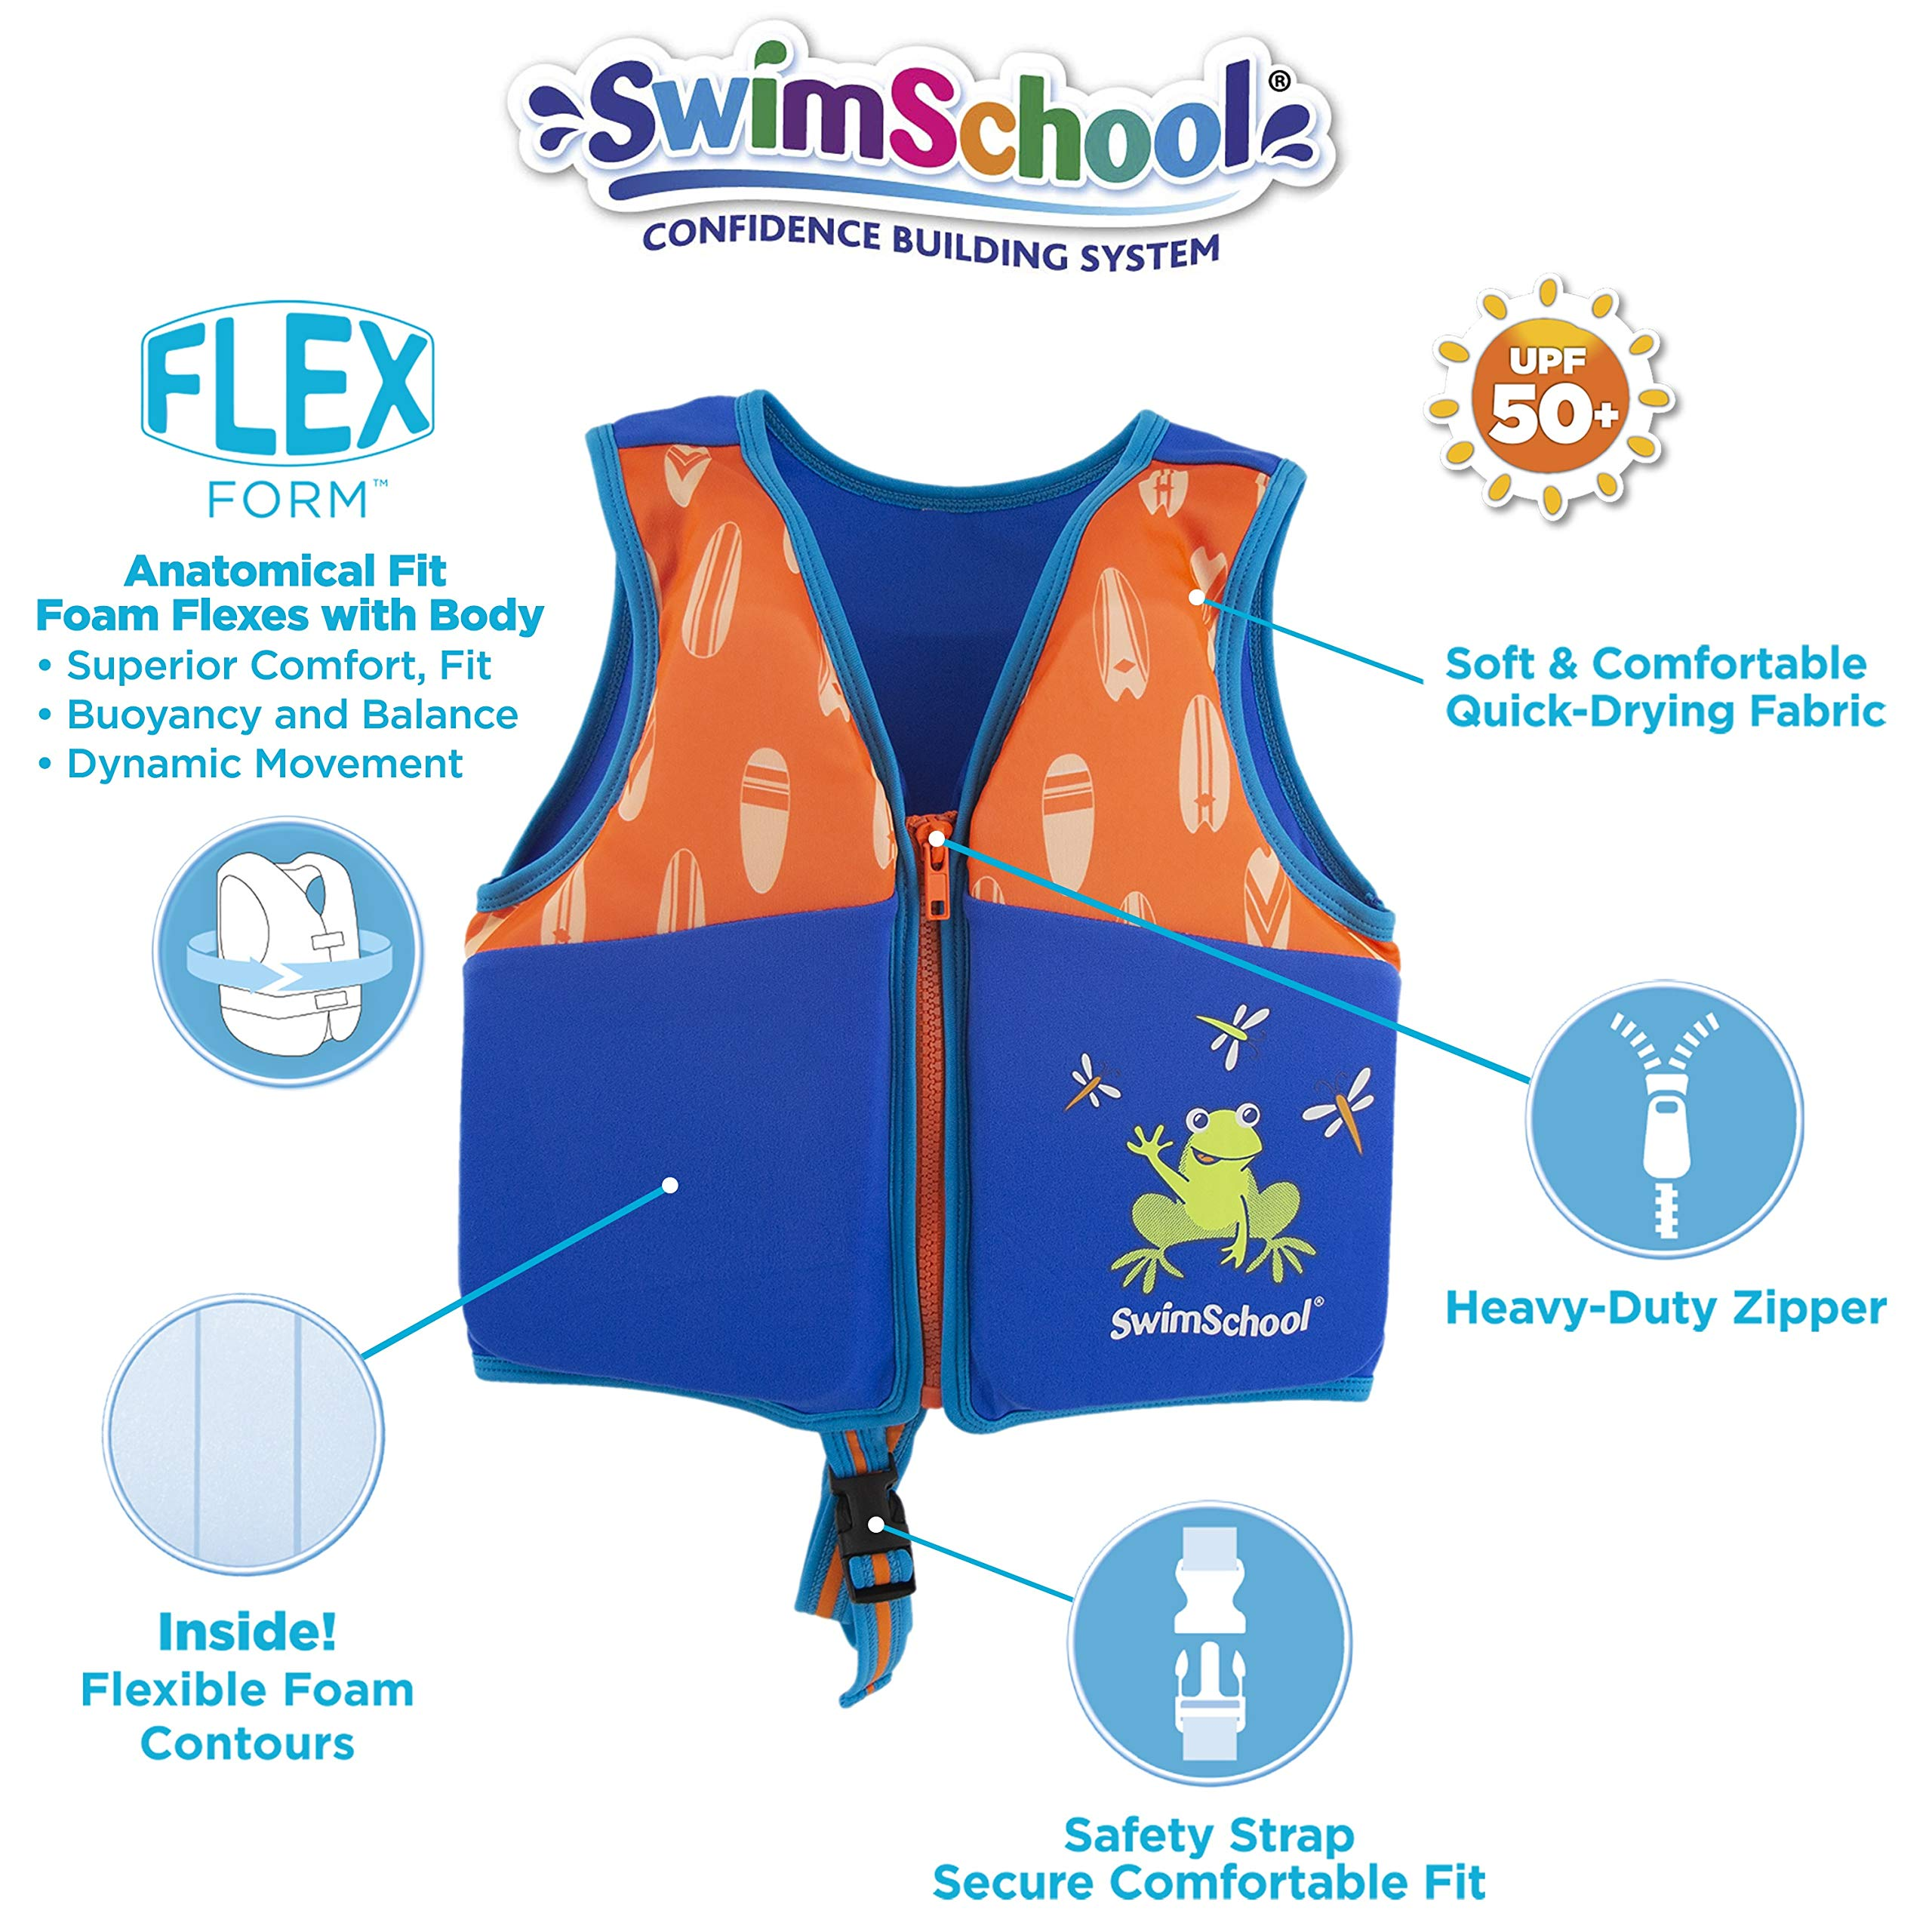 SwimSchool New & Improved Swim Trainer Vest, Flex-Form, Adjustable Safety Strap, Easy on and Off, Small/Medium, Up to 33 lbs., Blue/Orange